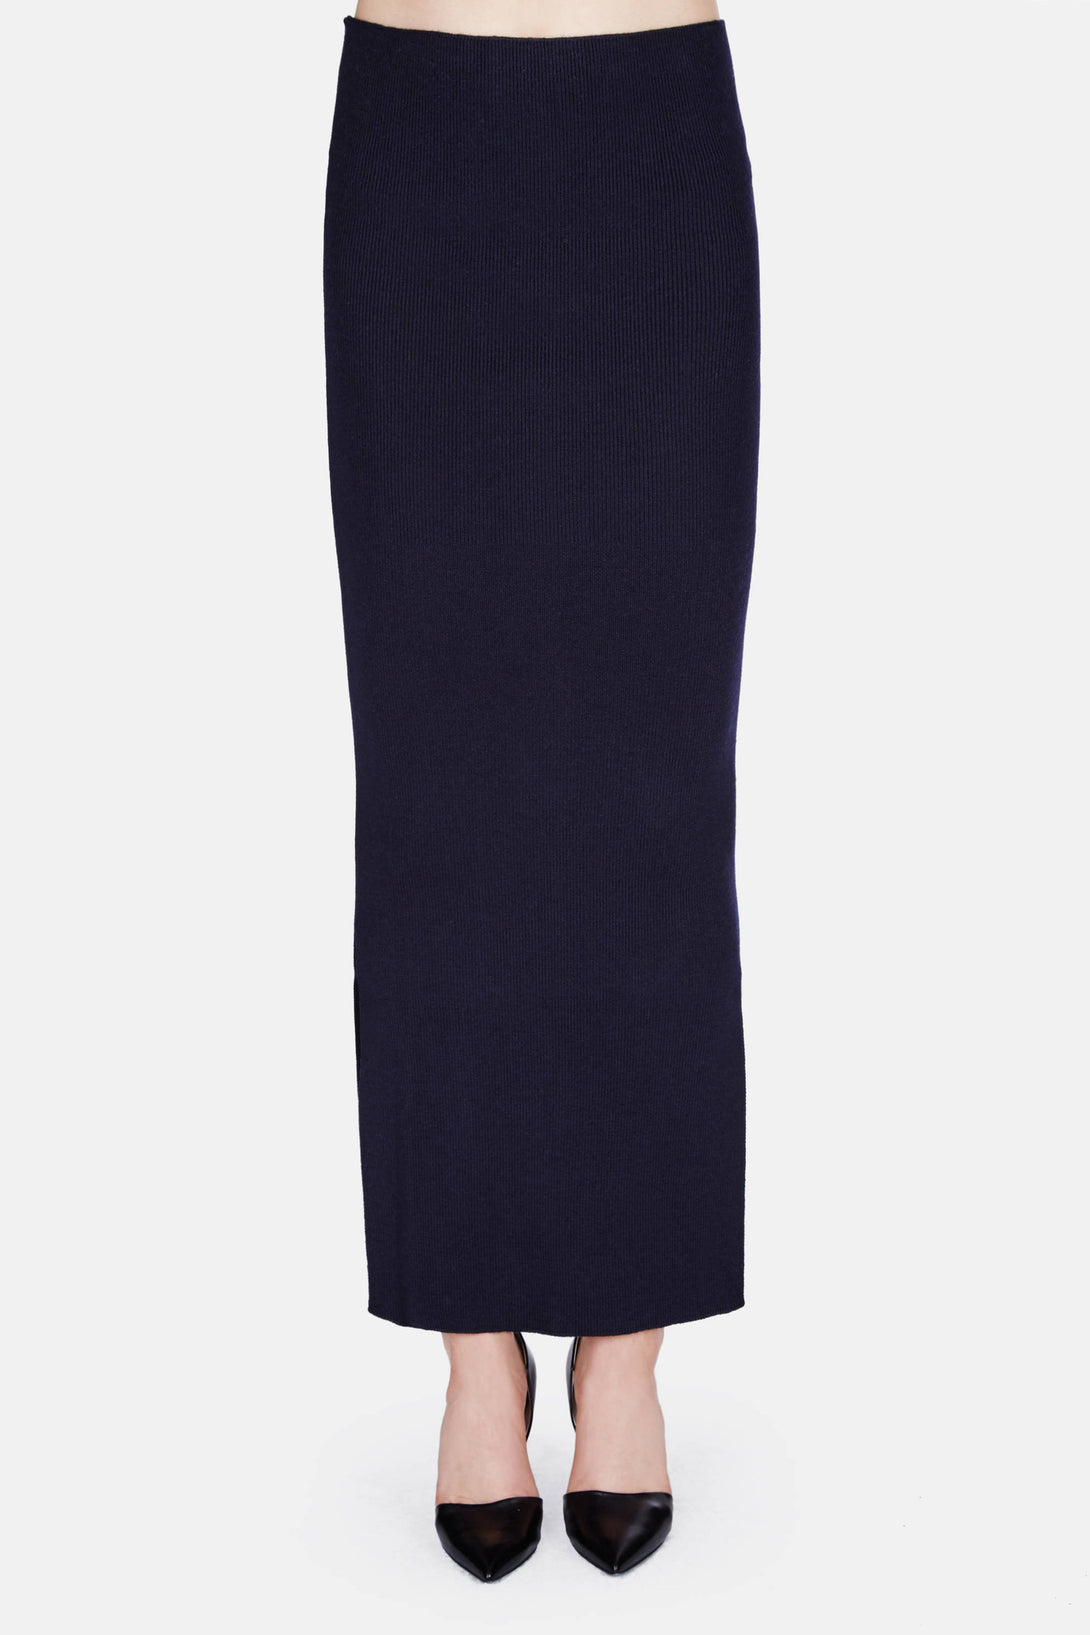 Knitted Tube Skirt - Midnight Blue